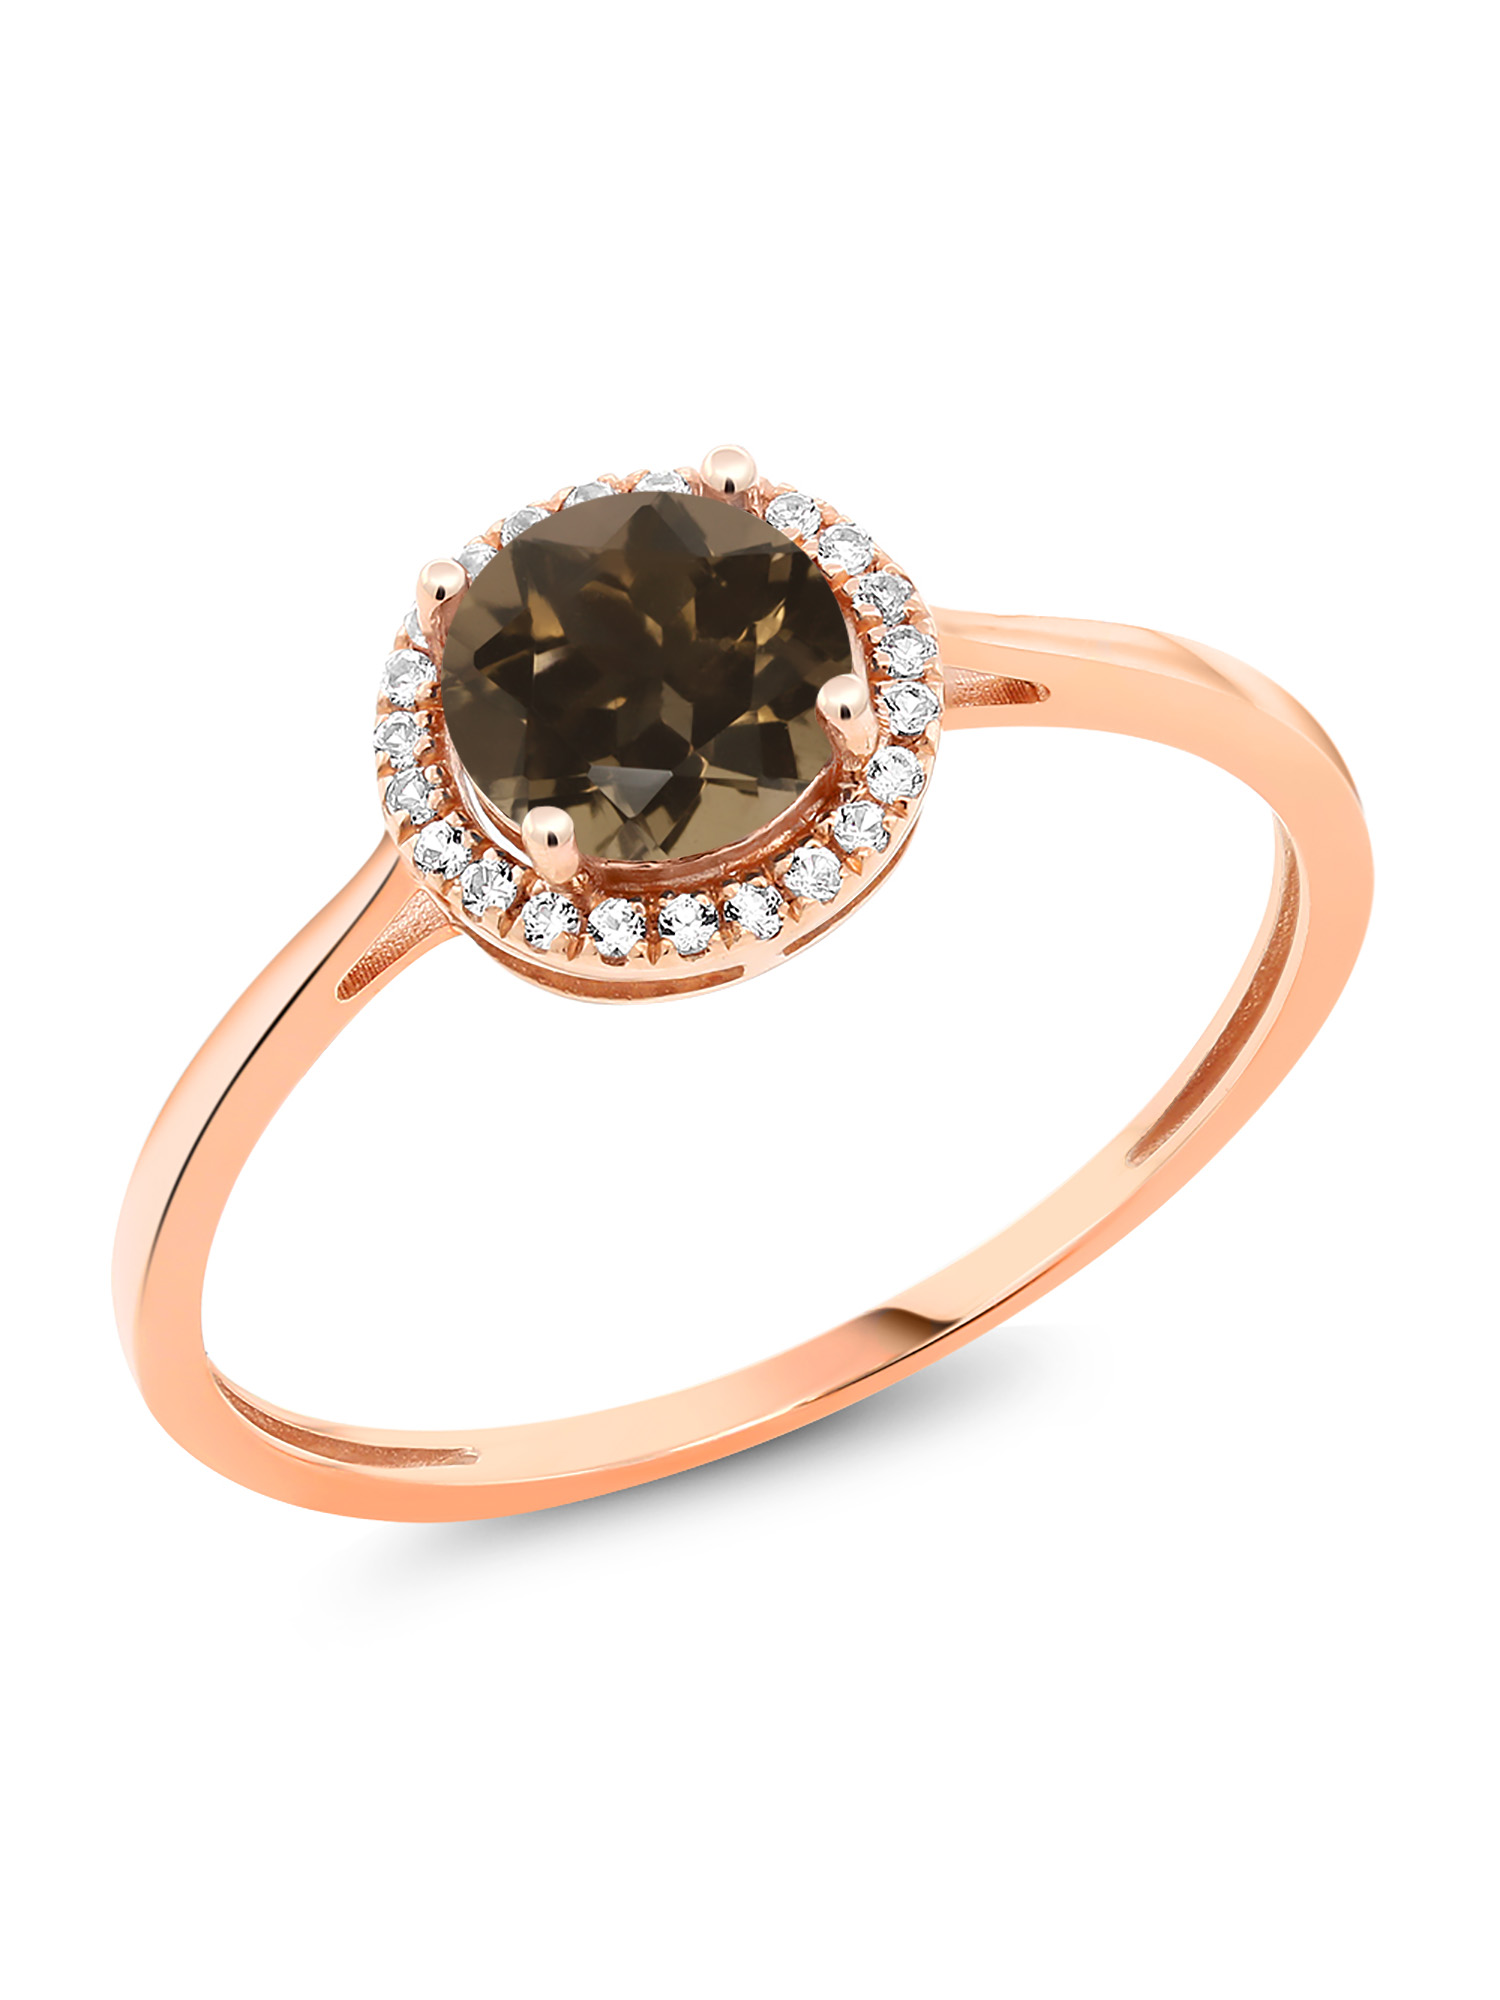 1.02 Ct Round Brown Smoky Quartz White Diamond 10K Rose Gold Ring